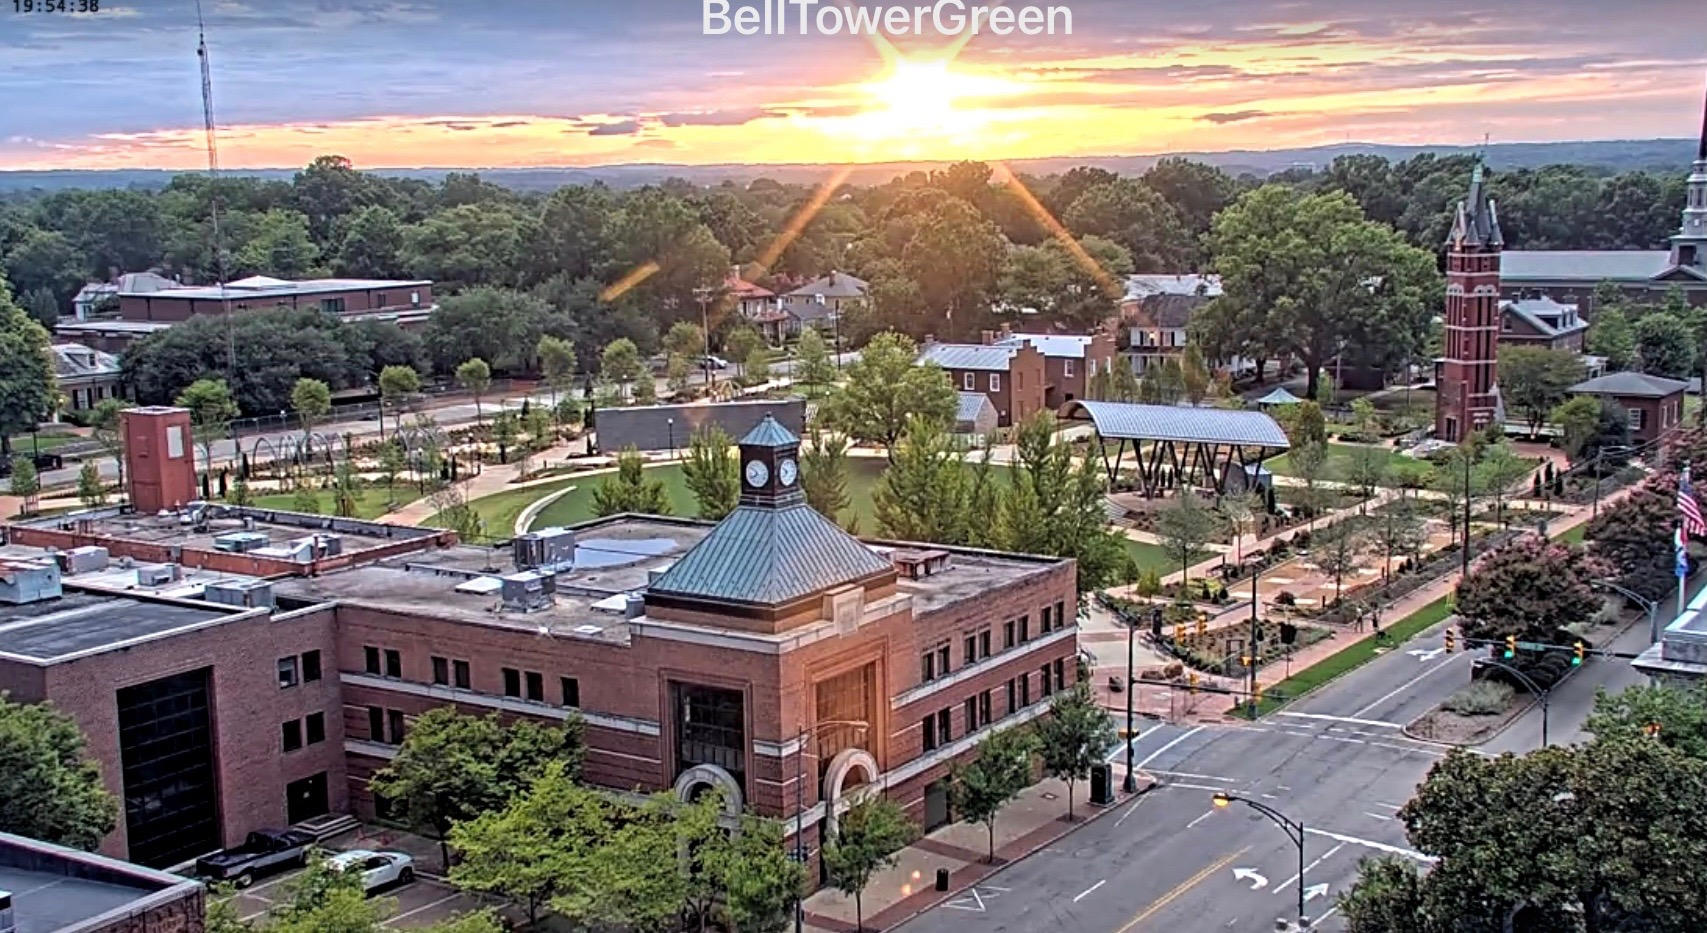 An overview of Bell Tower Green from above West Innes St.